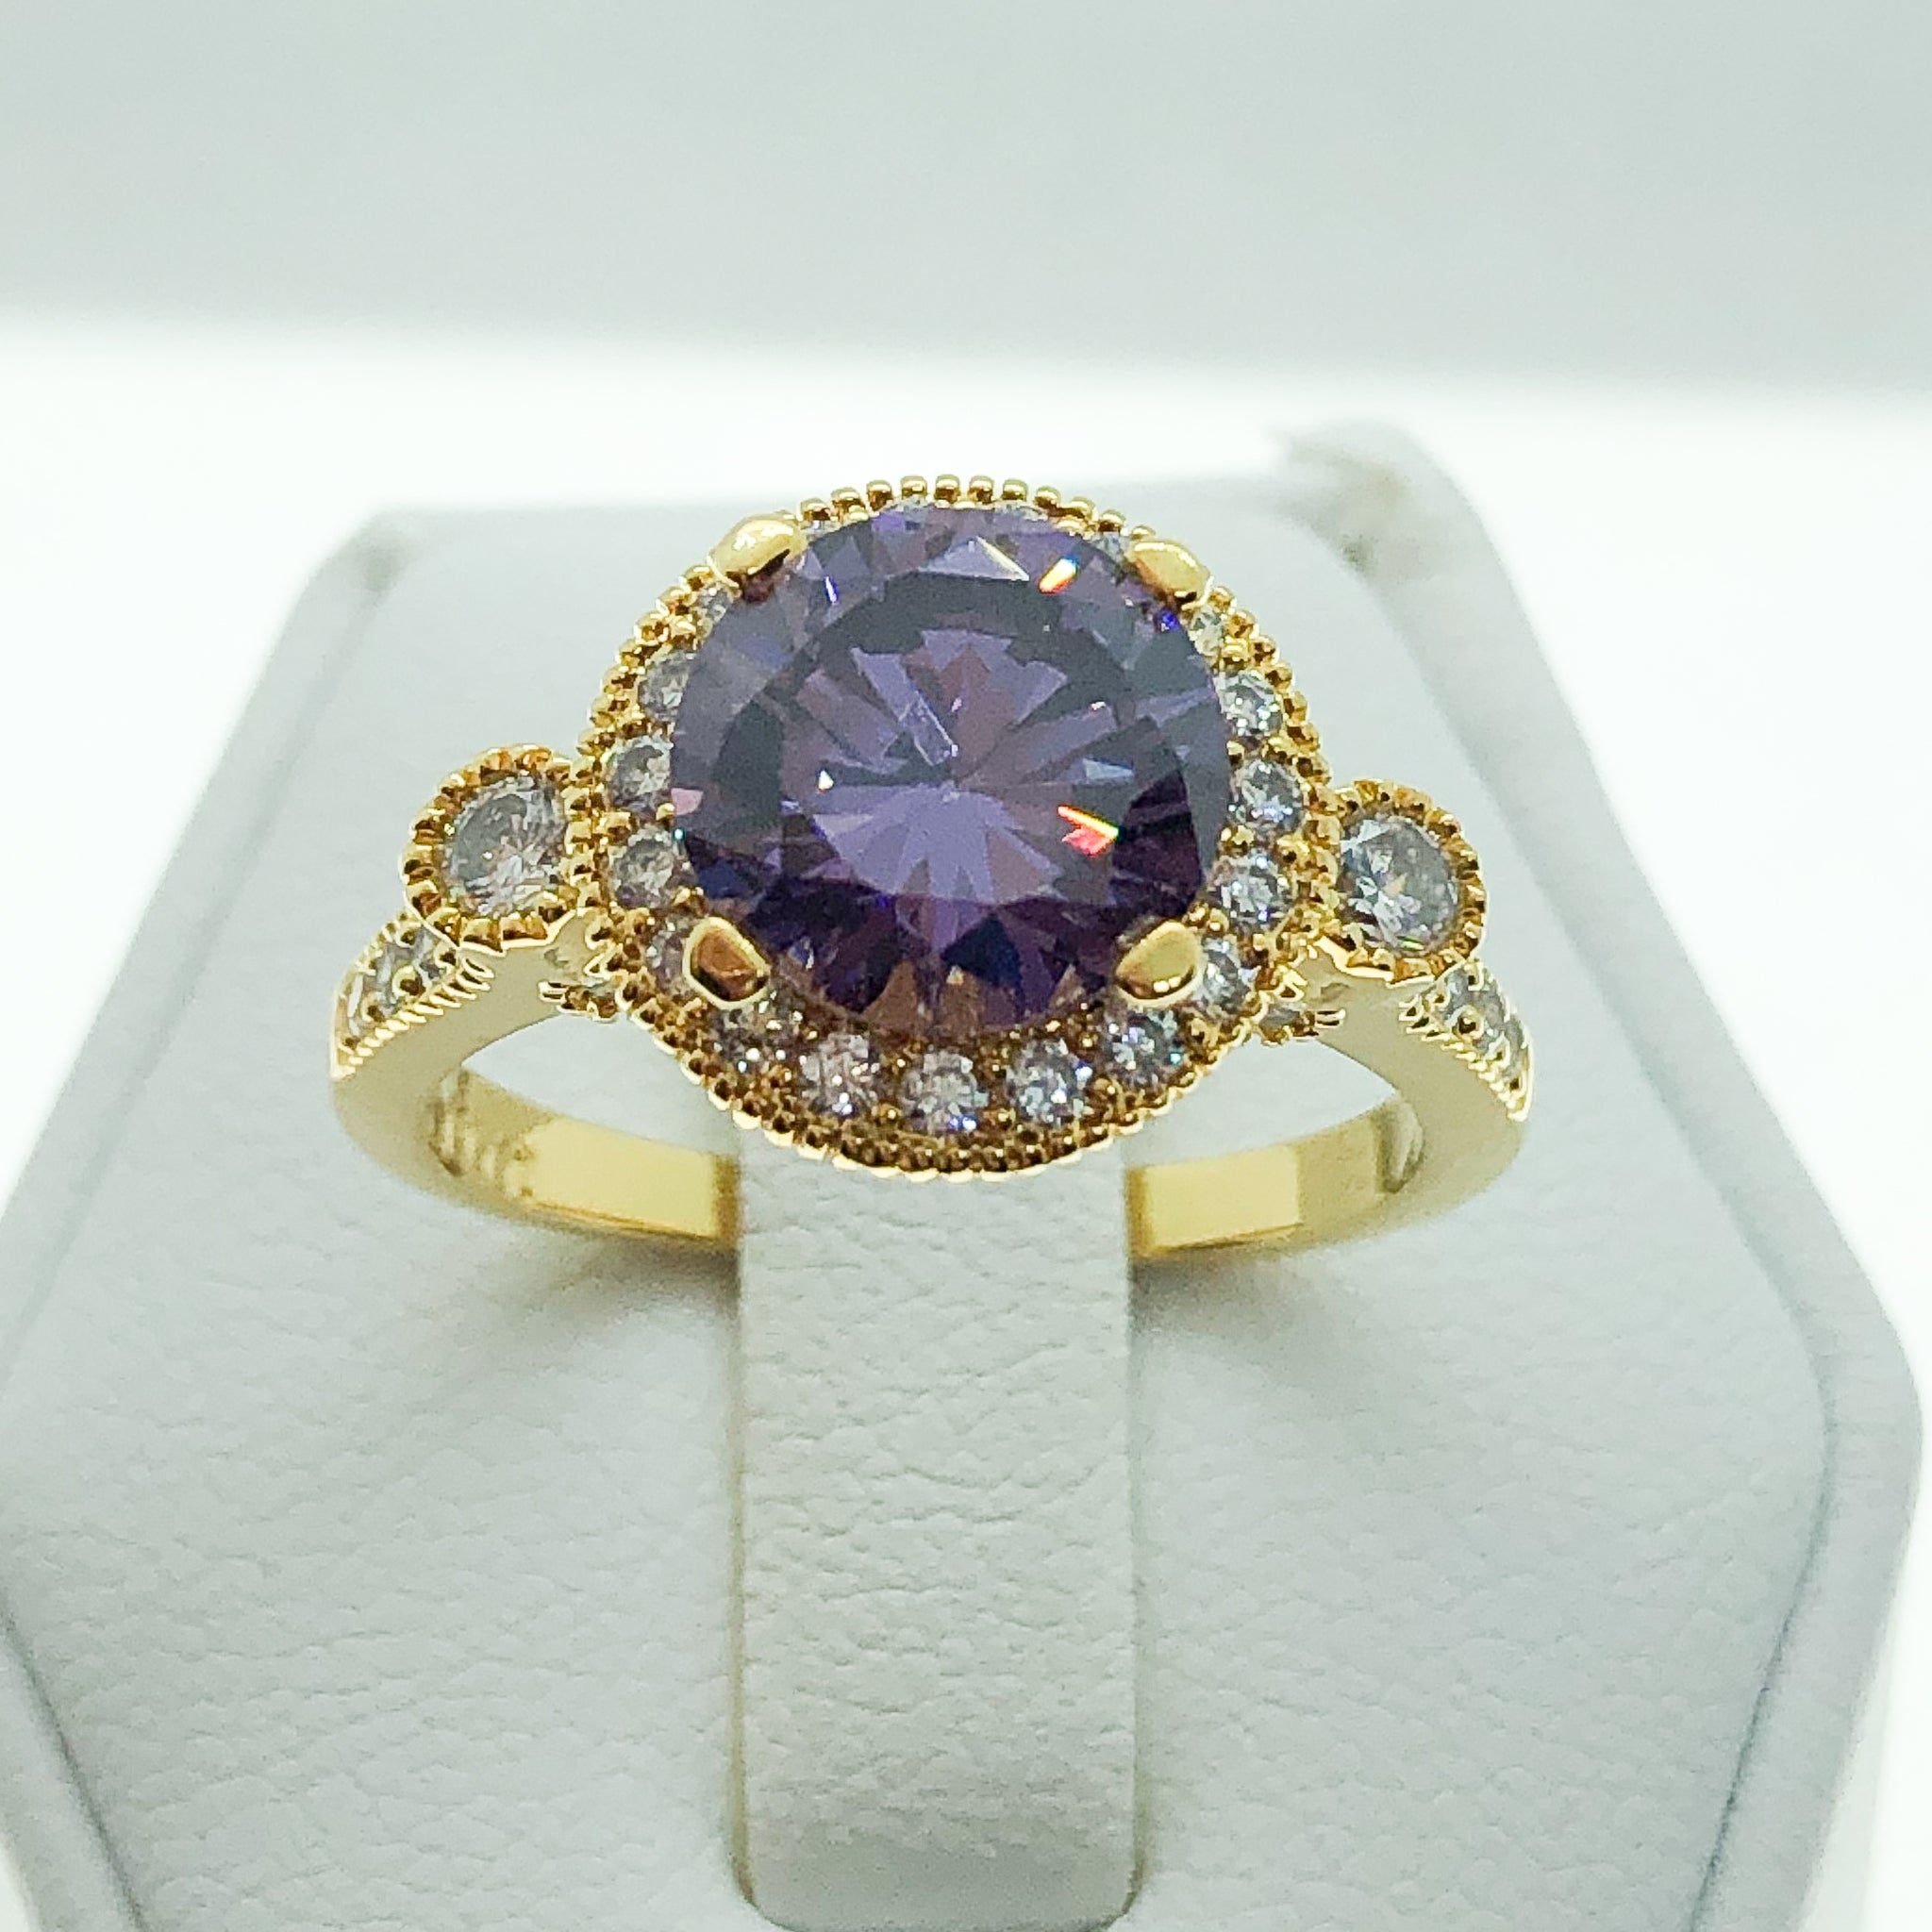 ID:R8008A Women Jewelry 18K Yellow Gold GF Glittering Amethyst Solitaire Ring Clear Accent